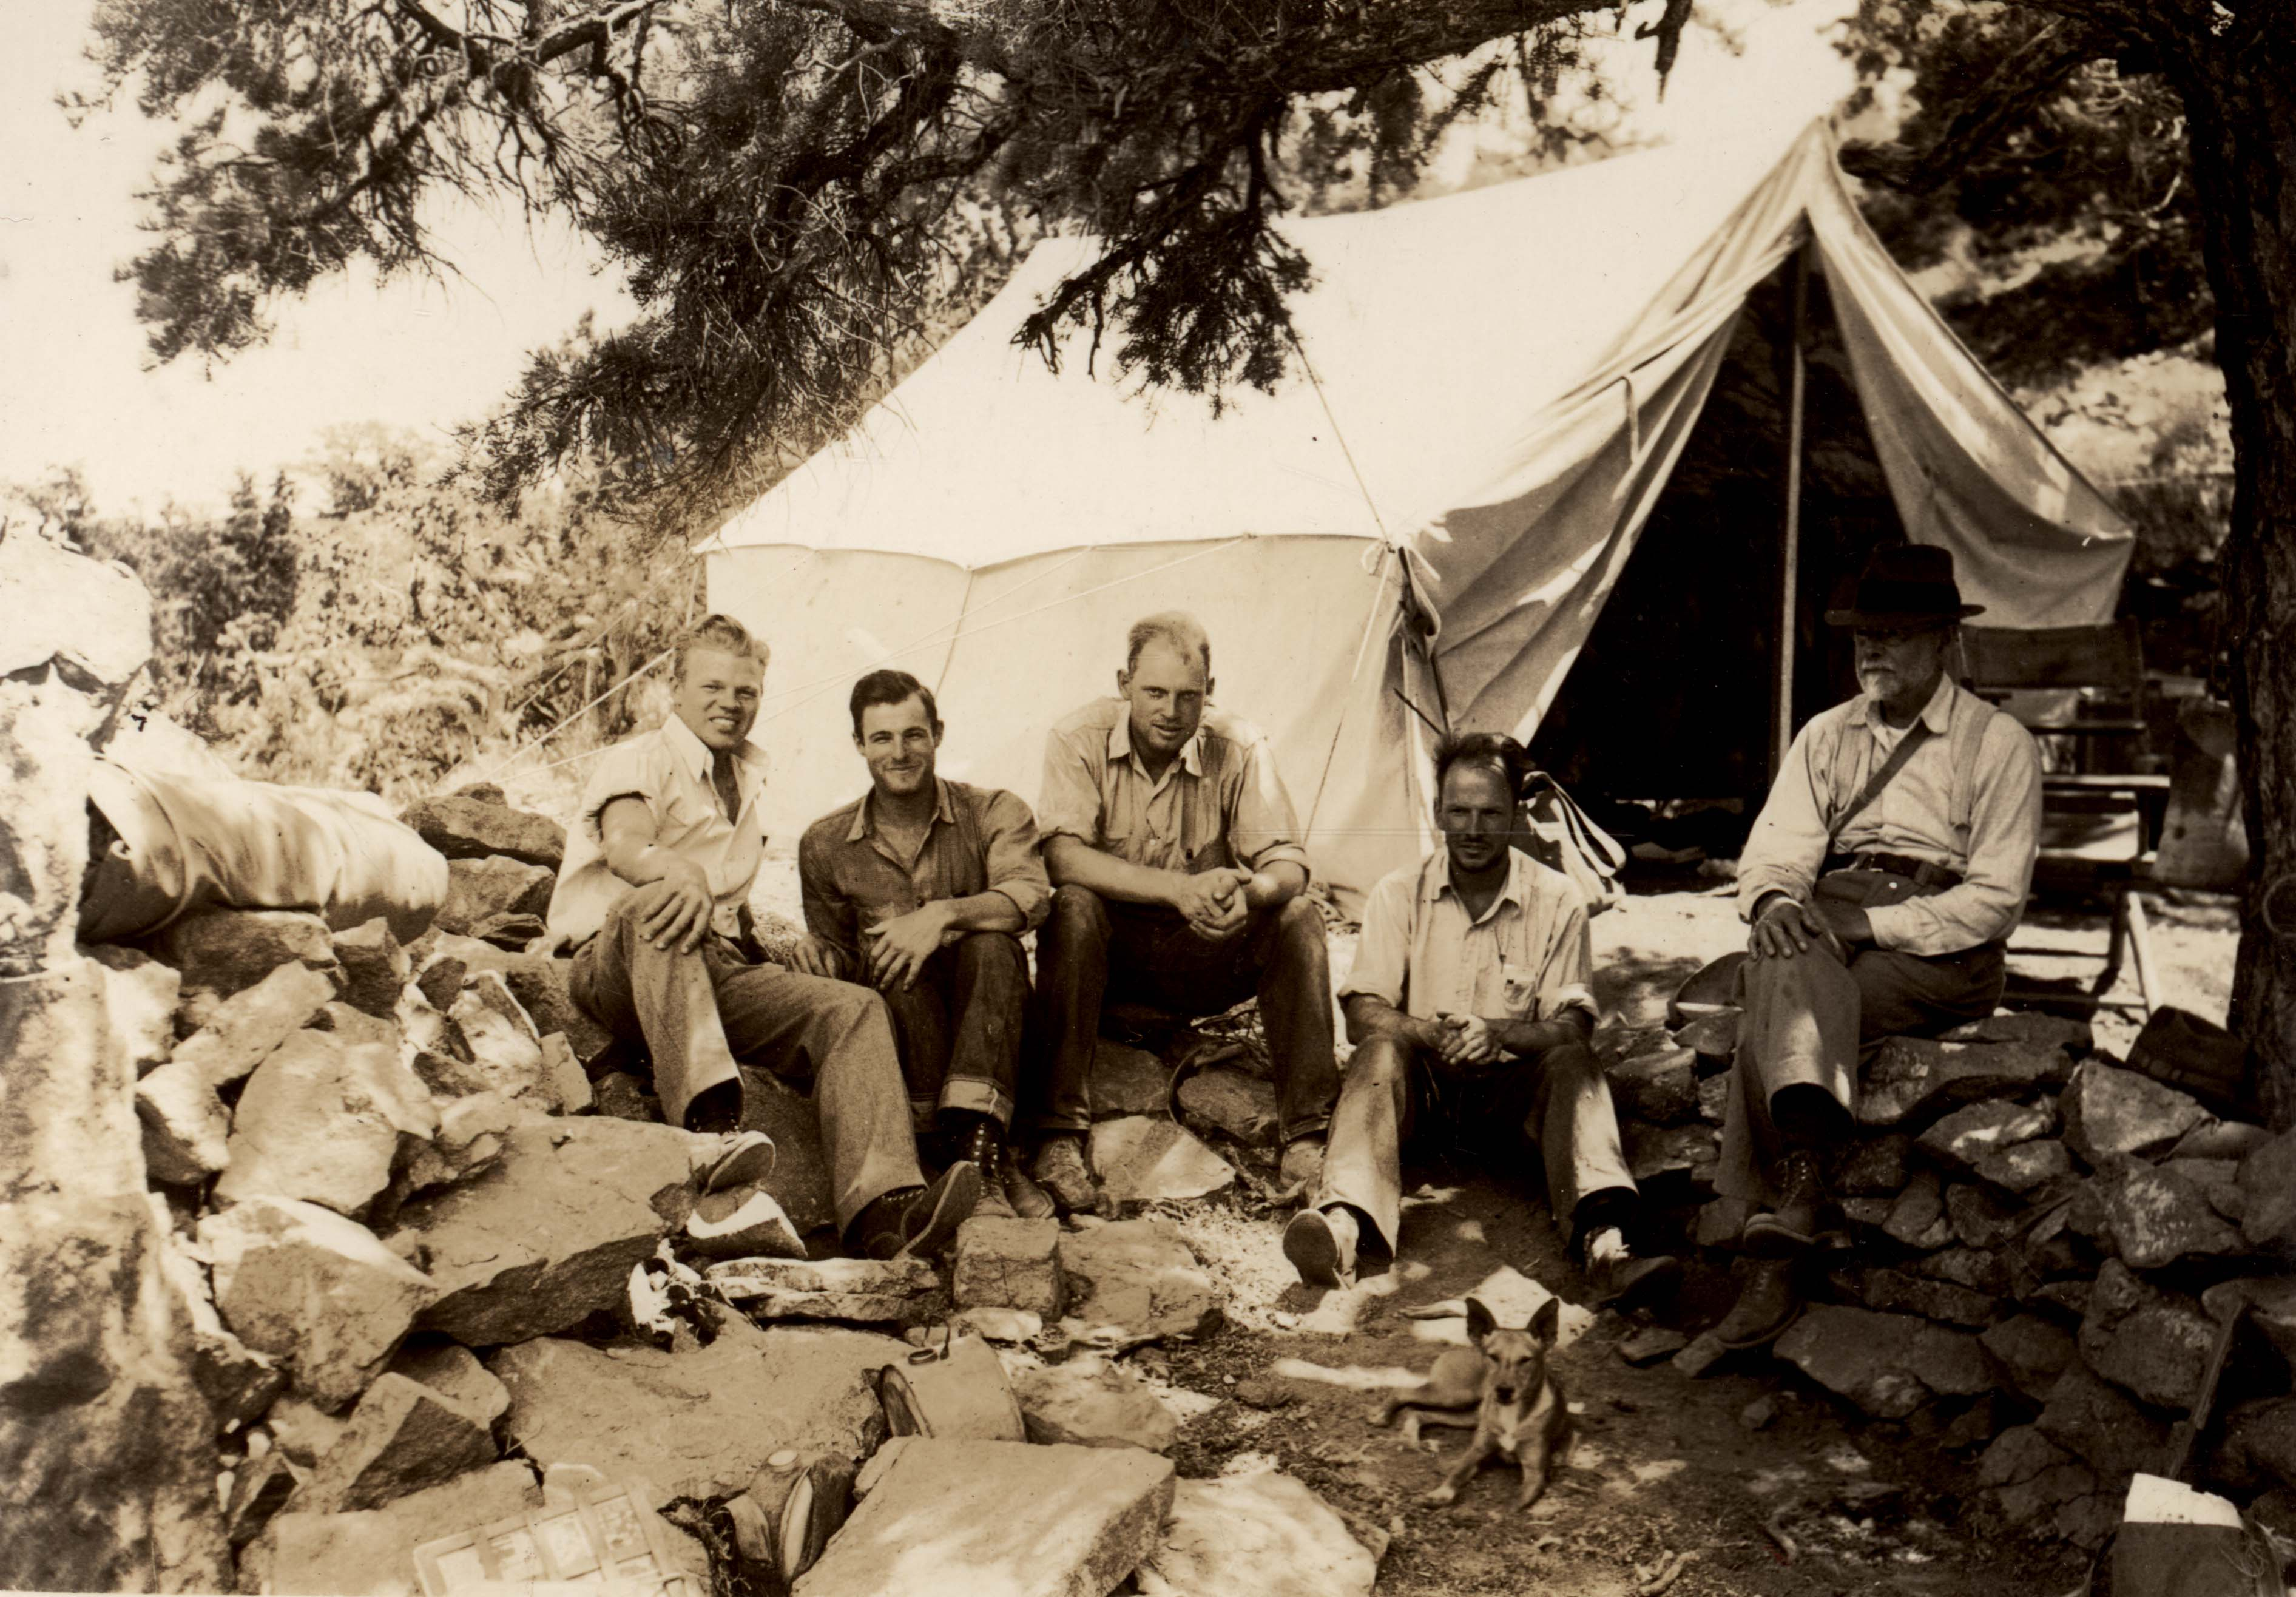 From left to right: Elmer Aldrich, Dale Avery, Dave Johnson, Tom Rodgers, and Joseph Grinnell. Cedar Canyon, Providence Mountains, San Bernardino County, California. June 1, 1938.